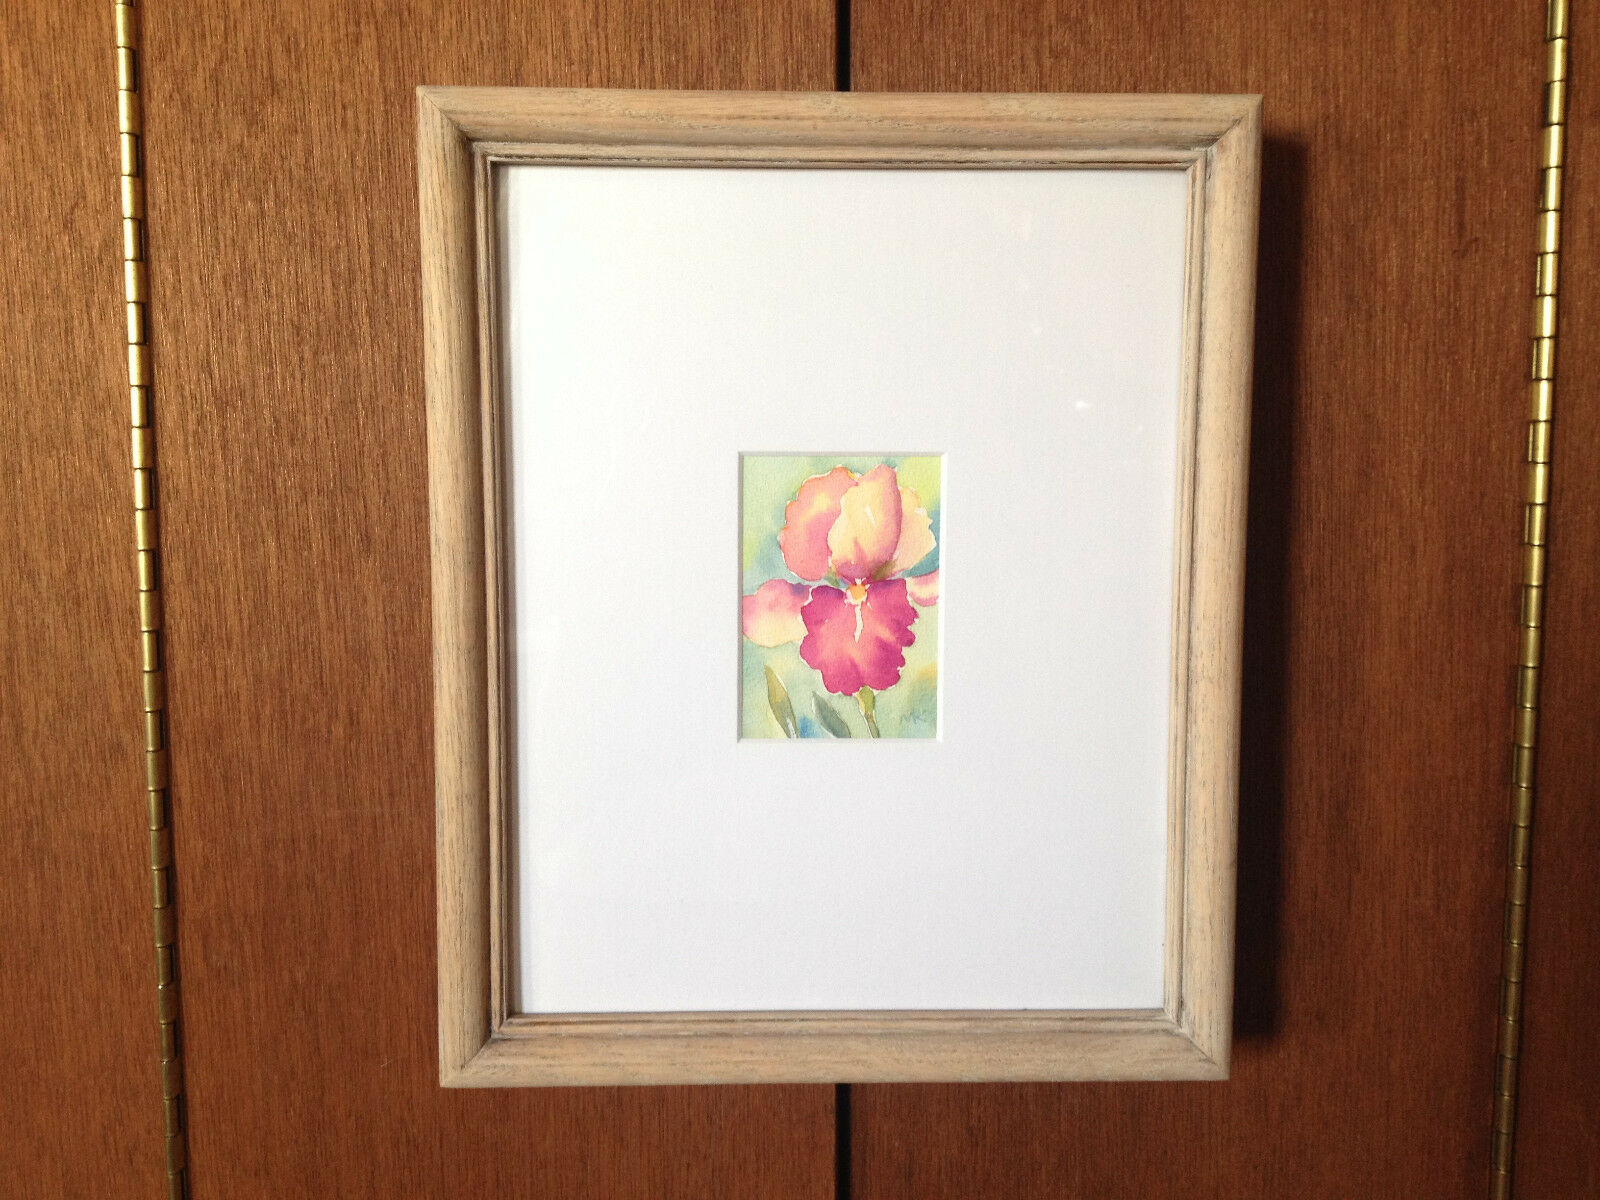 2 ACEO MAT LOT - NEW 8x10 WHITE MATS FOR FRAMING 2.5x3.5 PAINTINGS ...